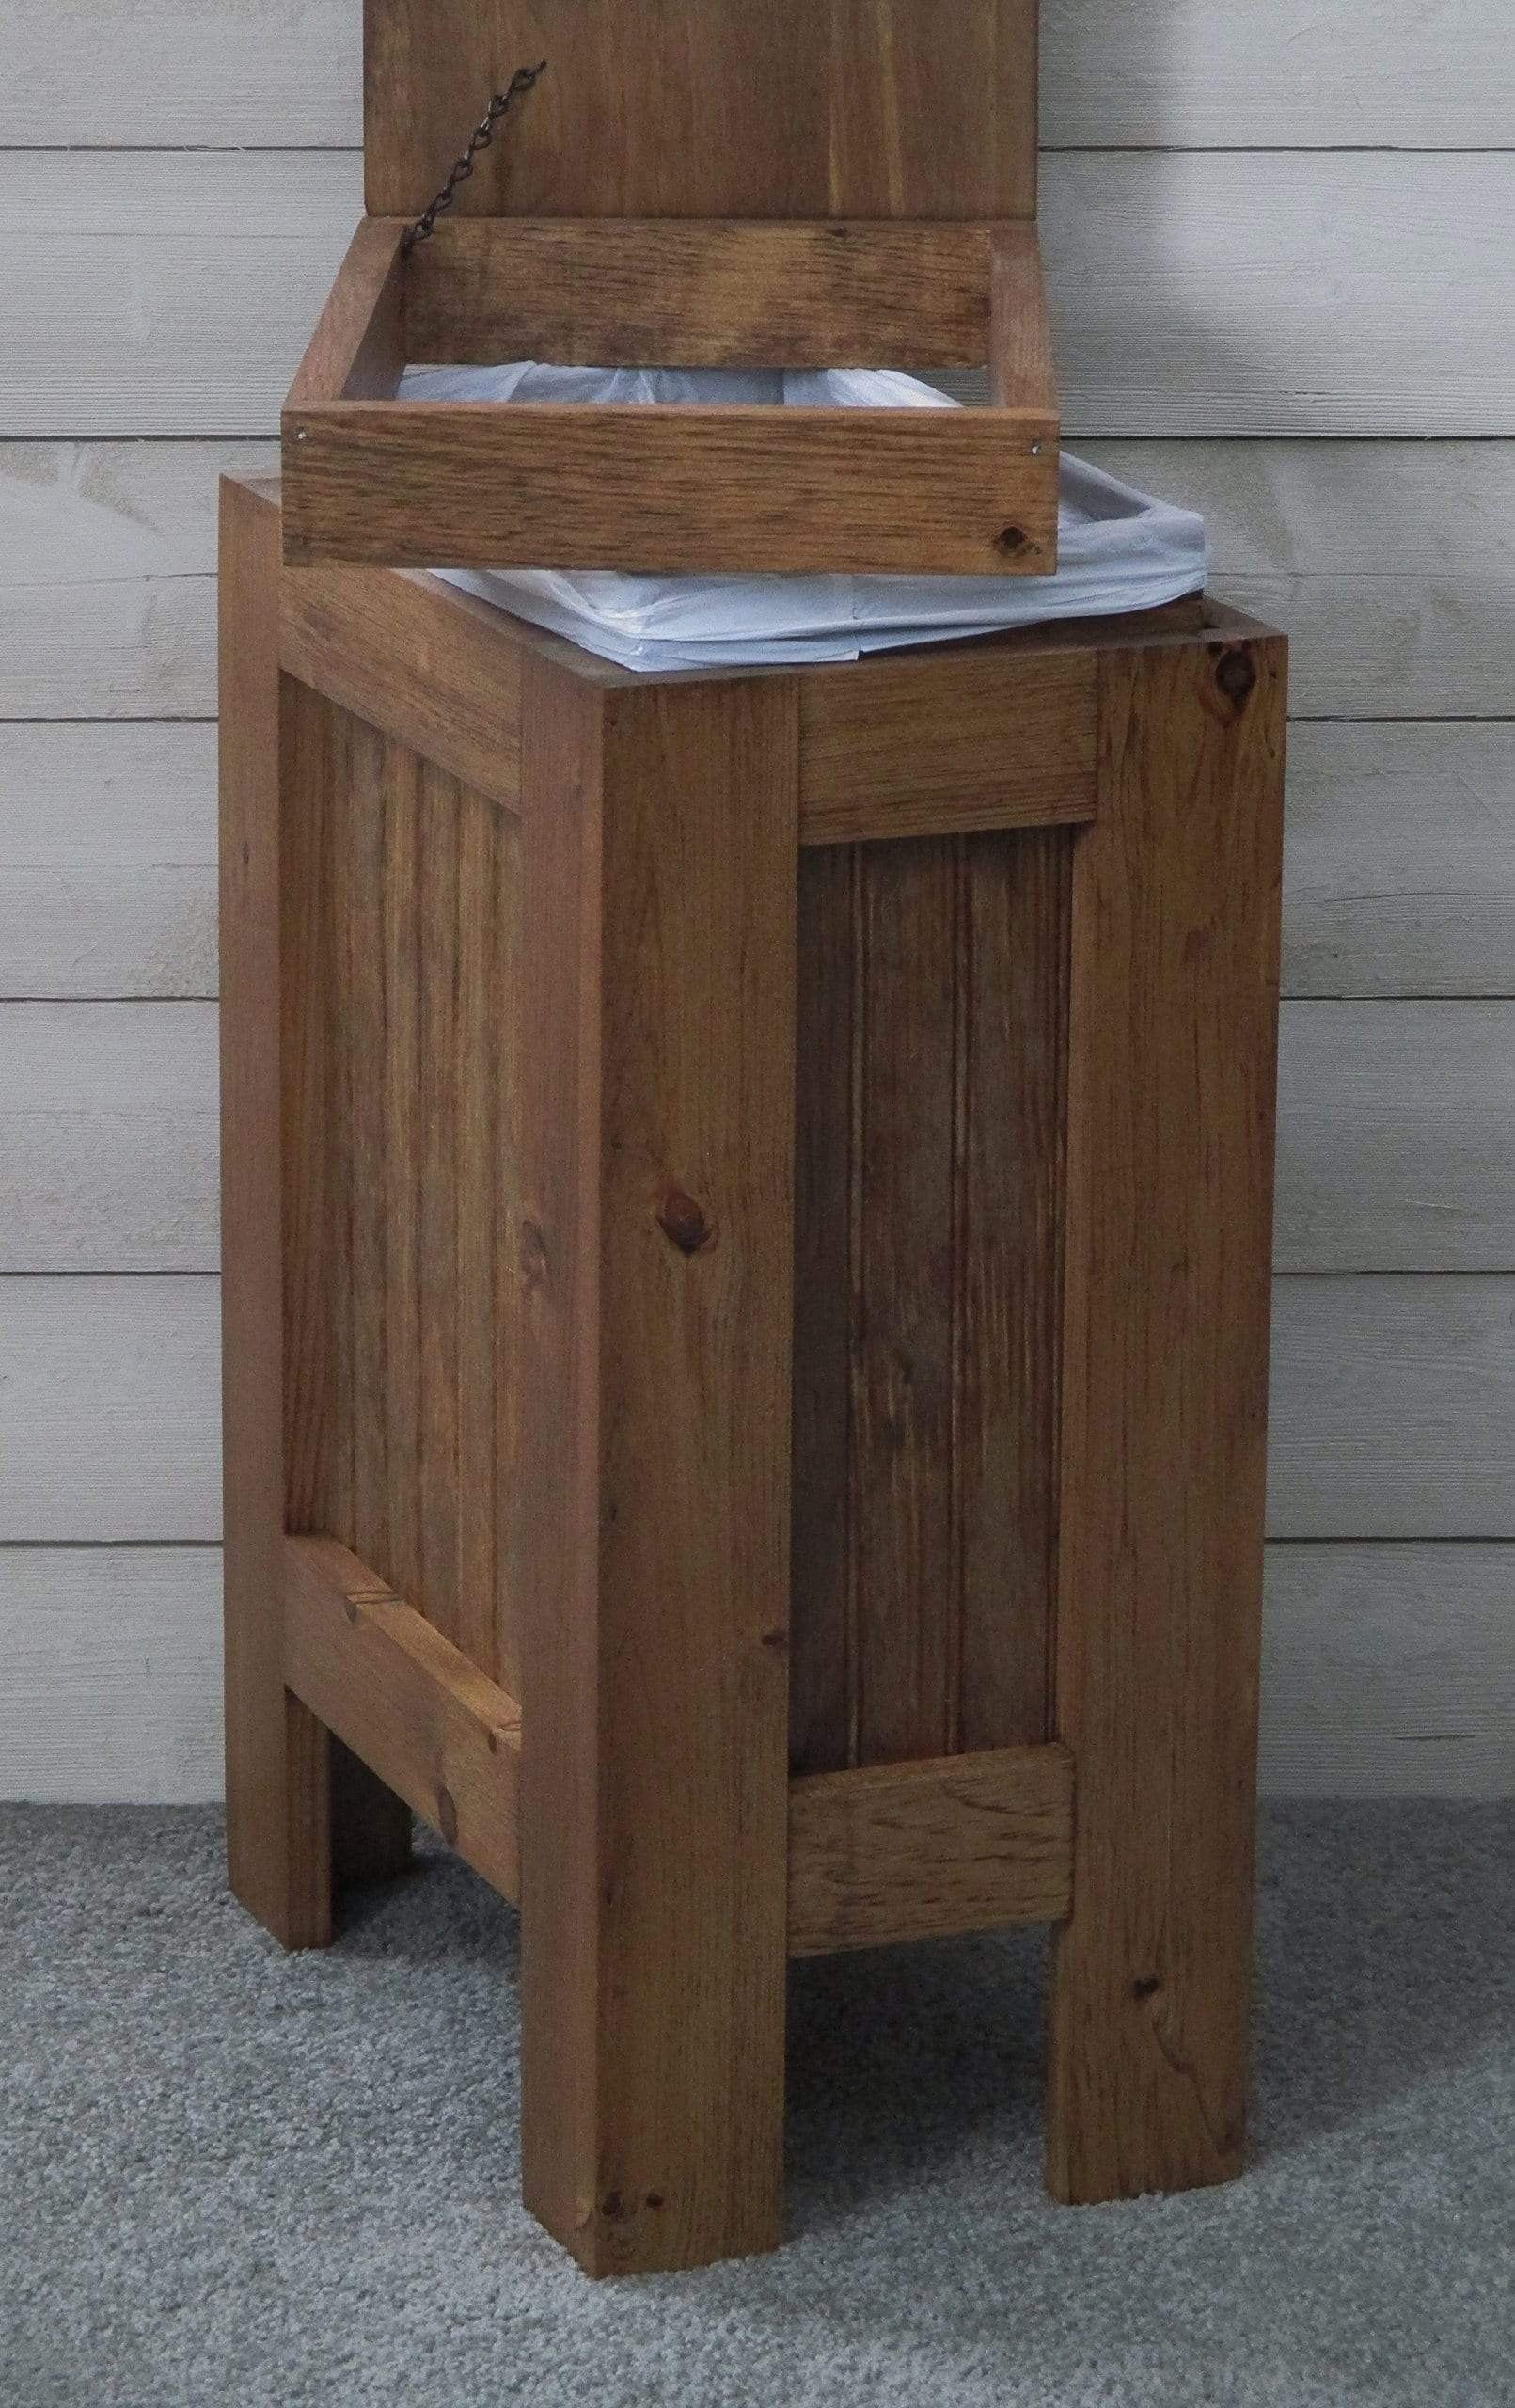 Get wood wooden trash bin kitchen garbage can 13 gallon recycle bin dog food storage early american stain rustic pine metal handle handmade in usa by buffalowoodshop